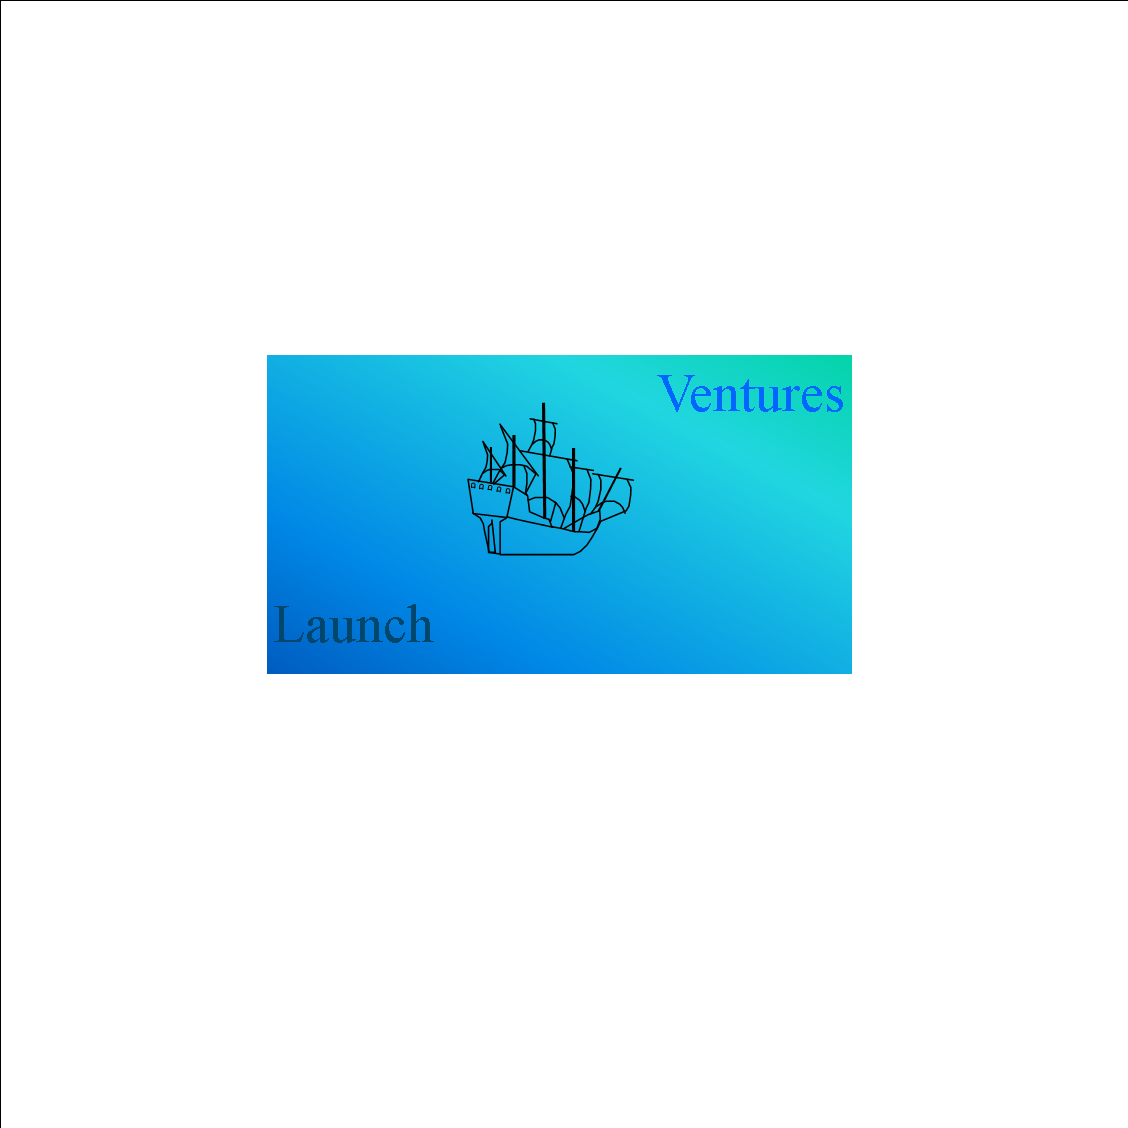 Logo Design by nk - Entry No. 196 in the Logo Design Contest Launch Ventures.